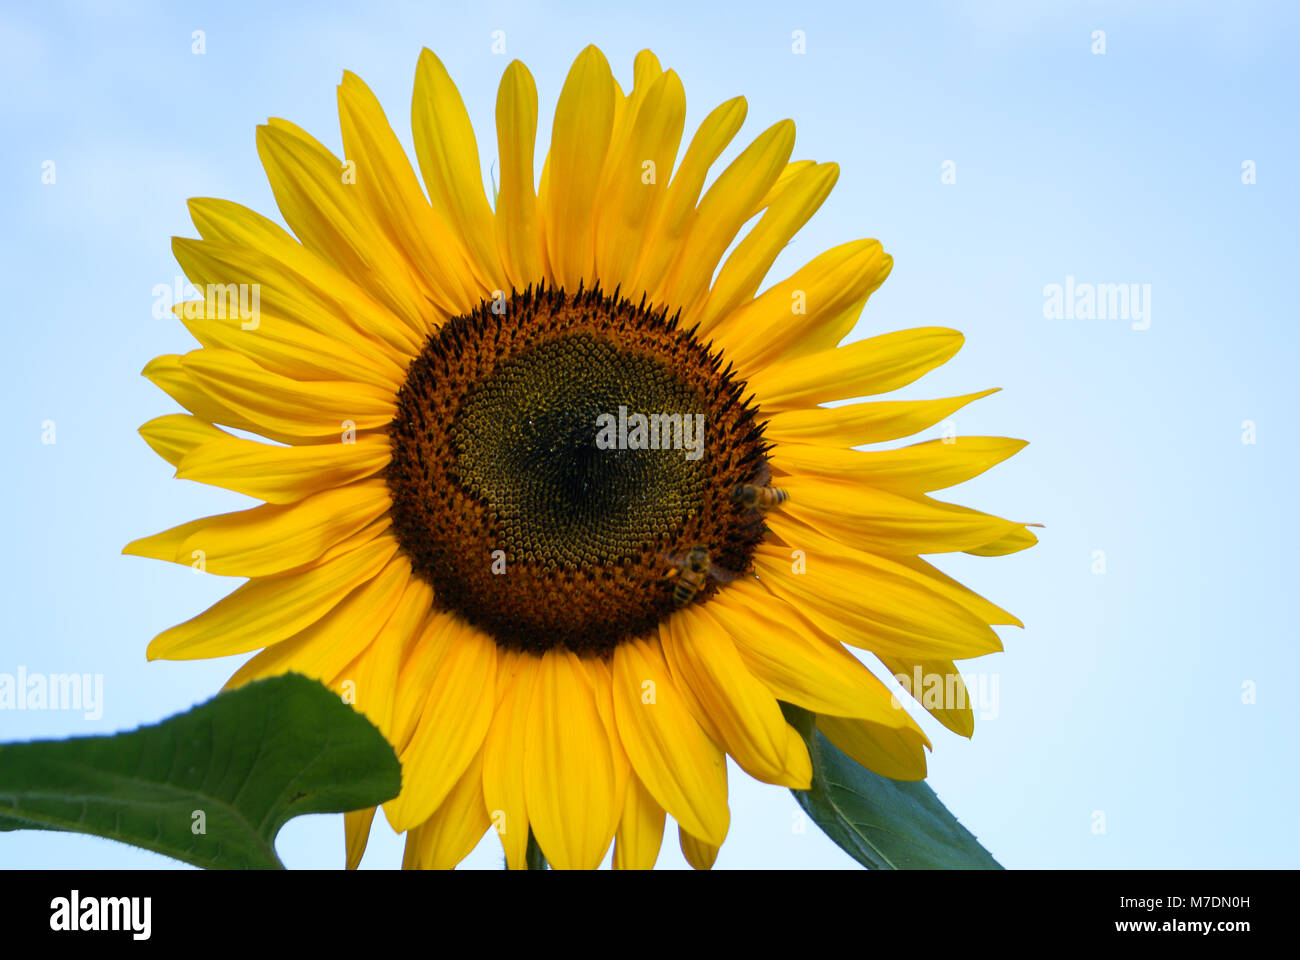 Two Bees on Sunflower - Stock Image